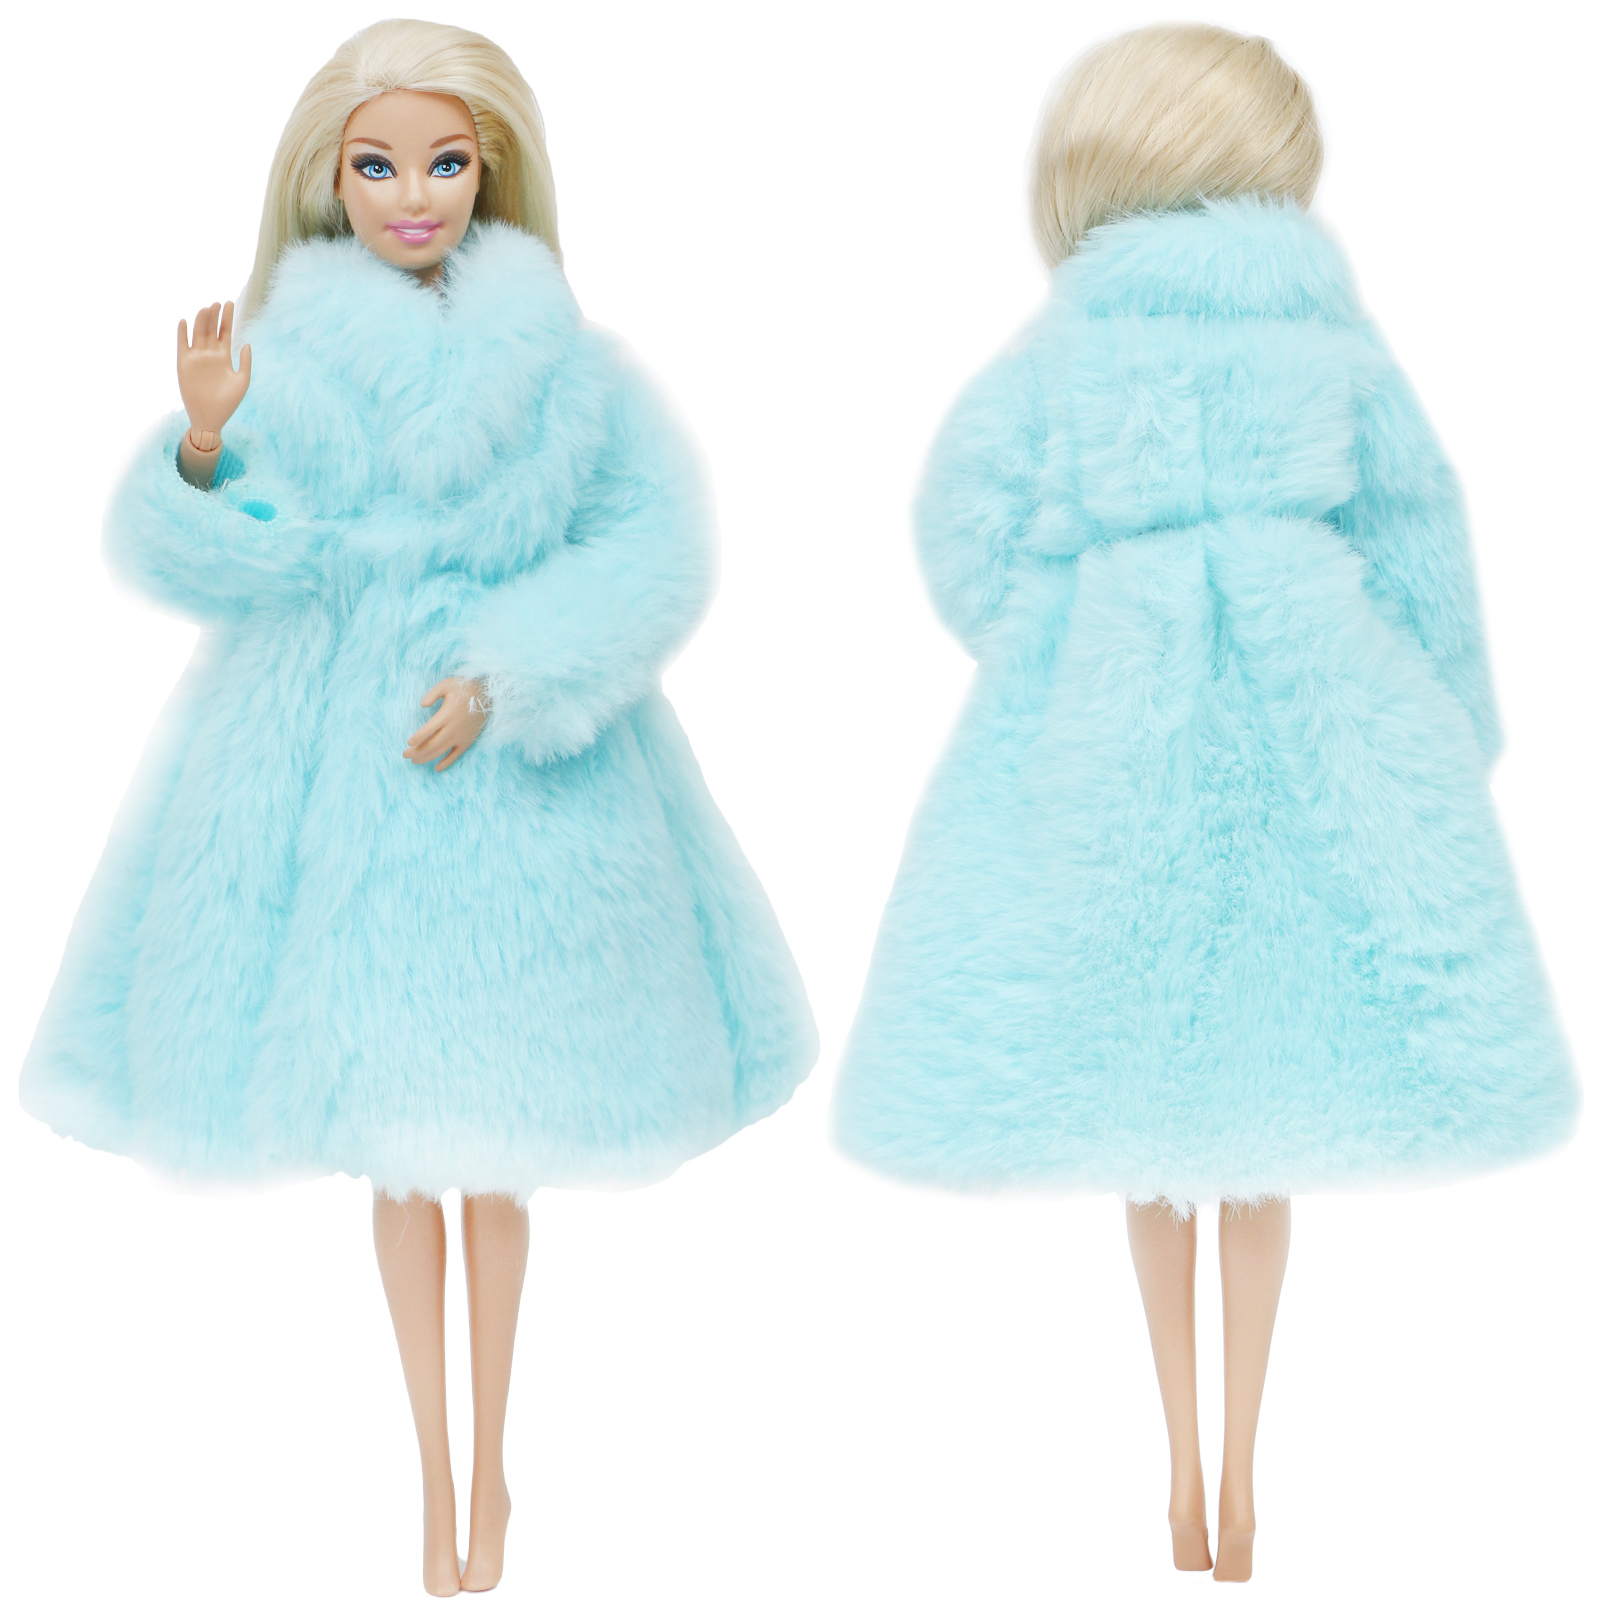 One Pcs Blue Wool Coat Noble Winter Wear High Quality Fashion Dress Accessories Clothes For Barbie Doll Dollhouse Kids Girl Toy